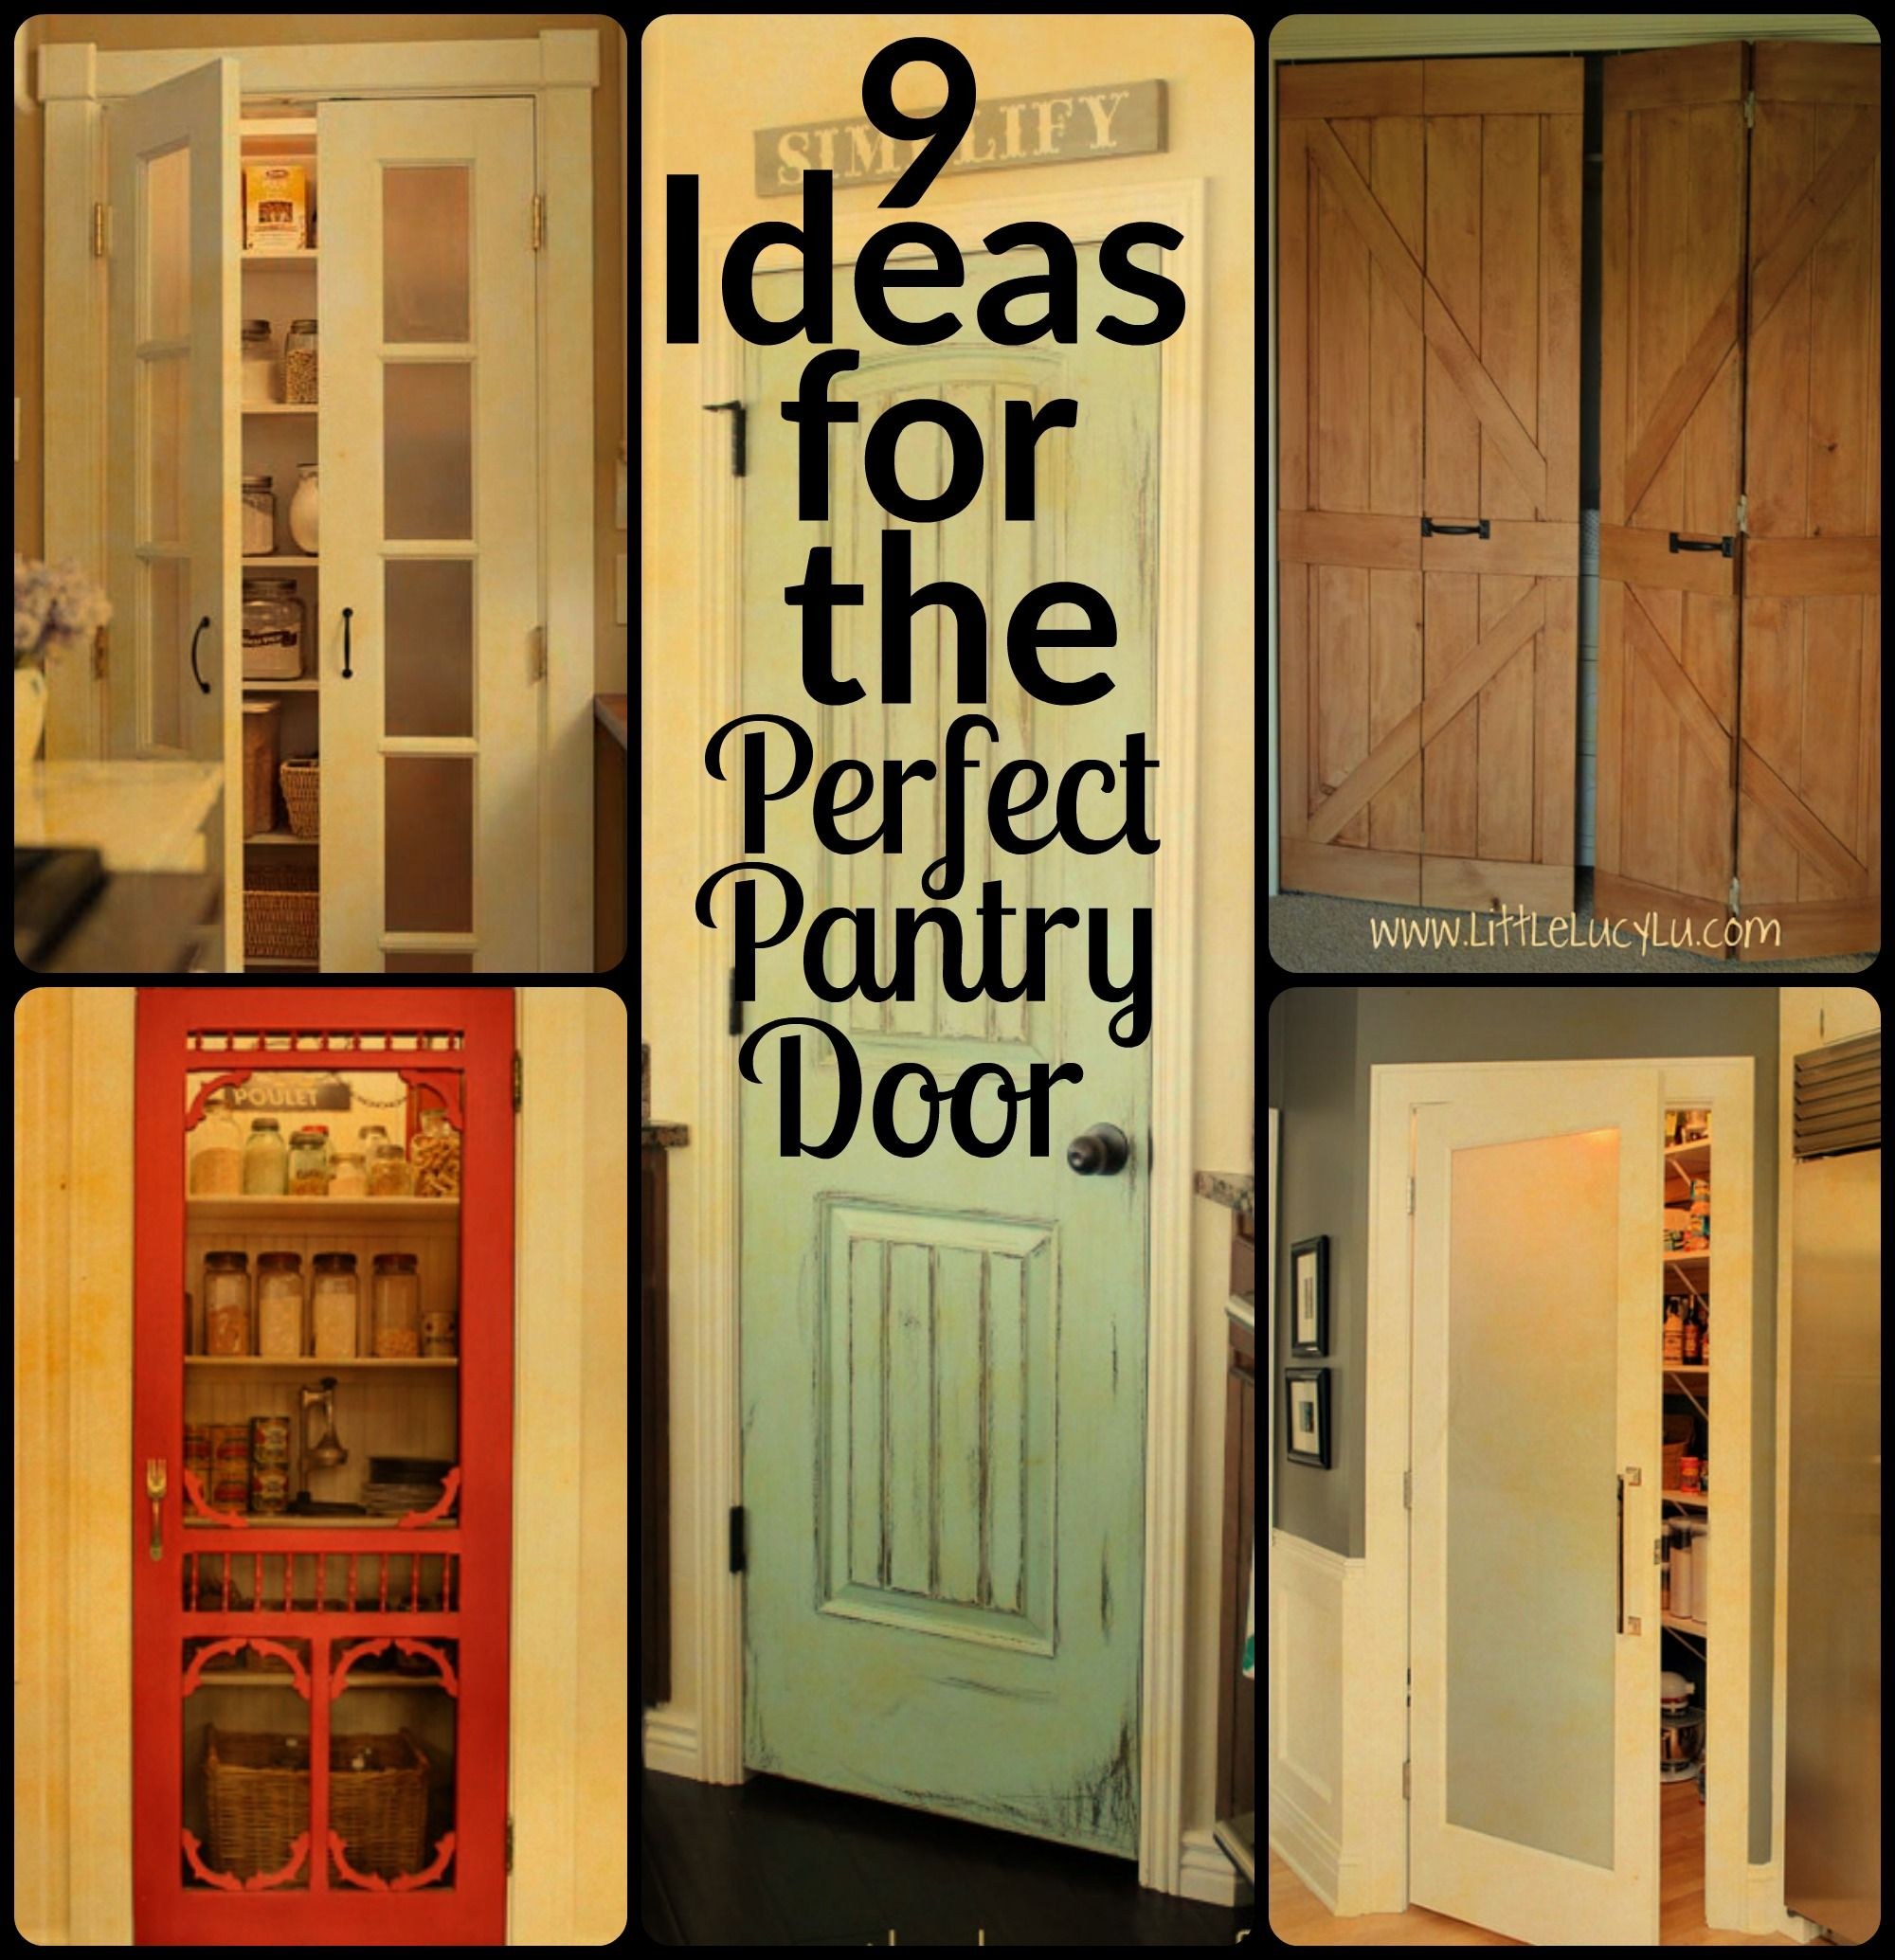 9 ideas for the perfect pantry door more - Kitchen Pantry Door Ideas